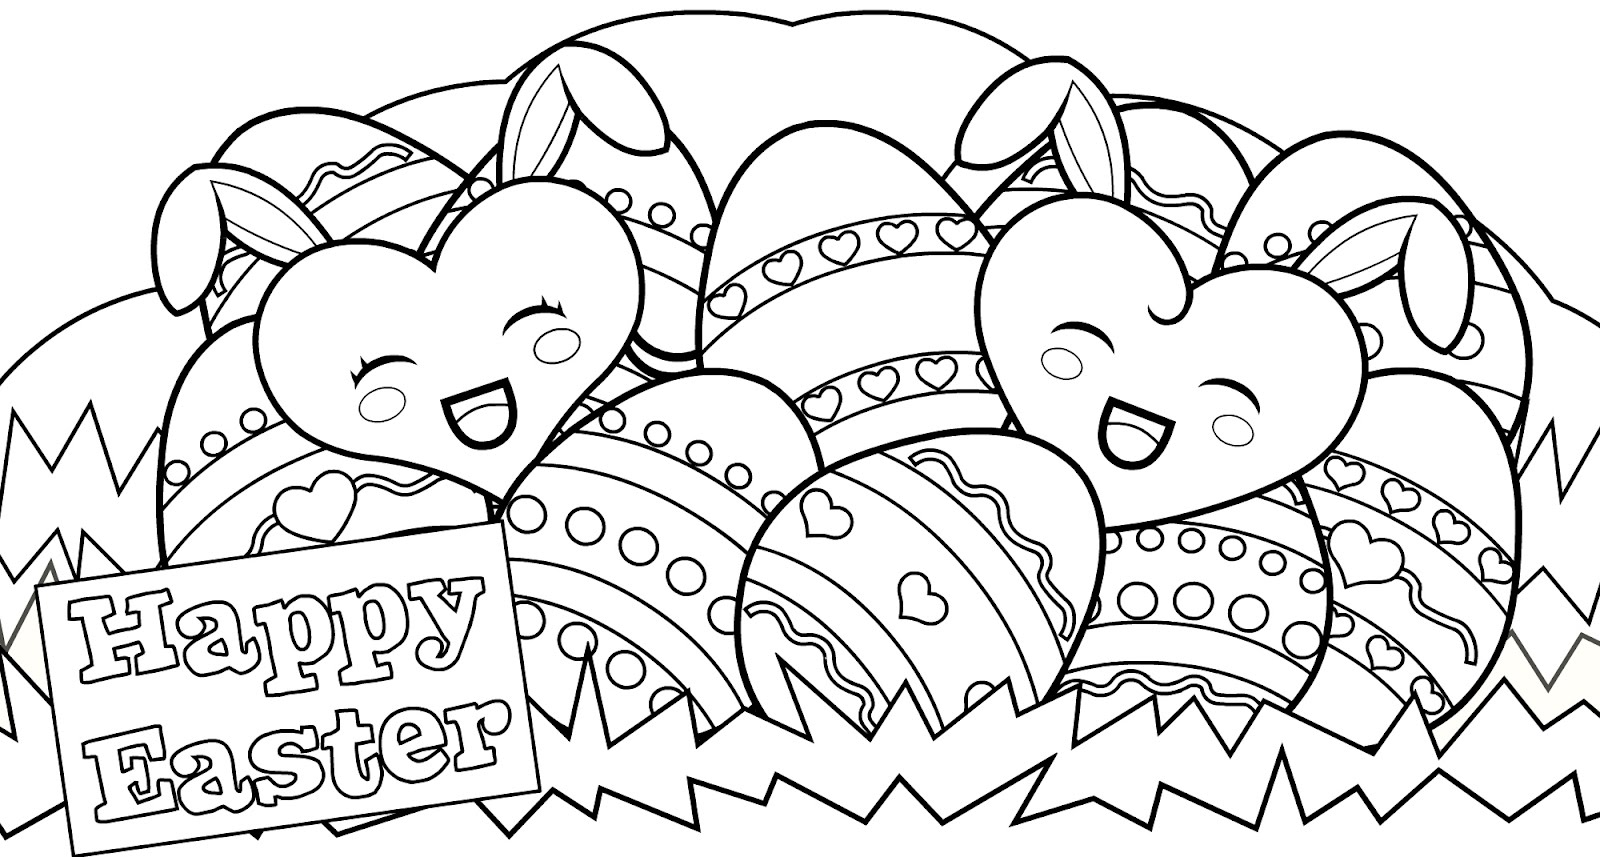 Free Easter Coloring Sheets Holiday Coloring Pages Coloring Pages Easter